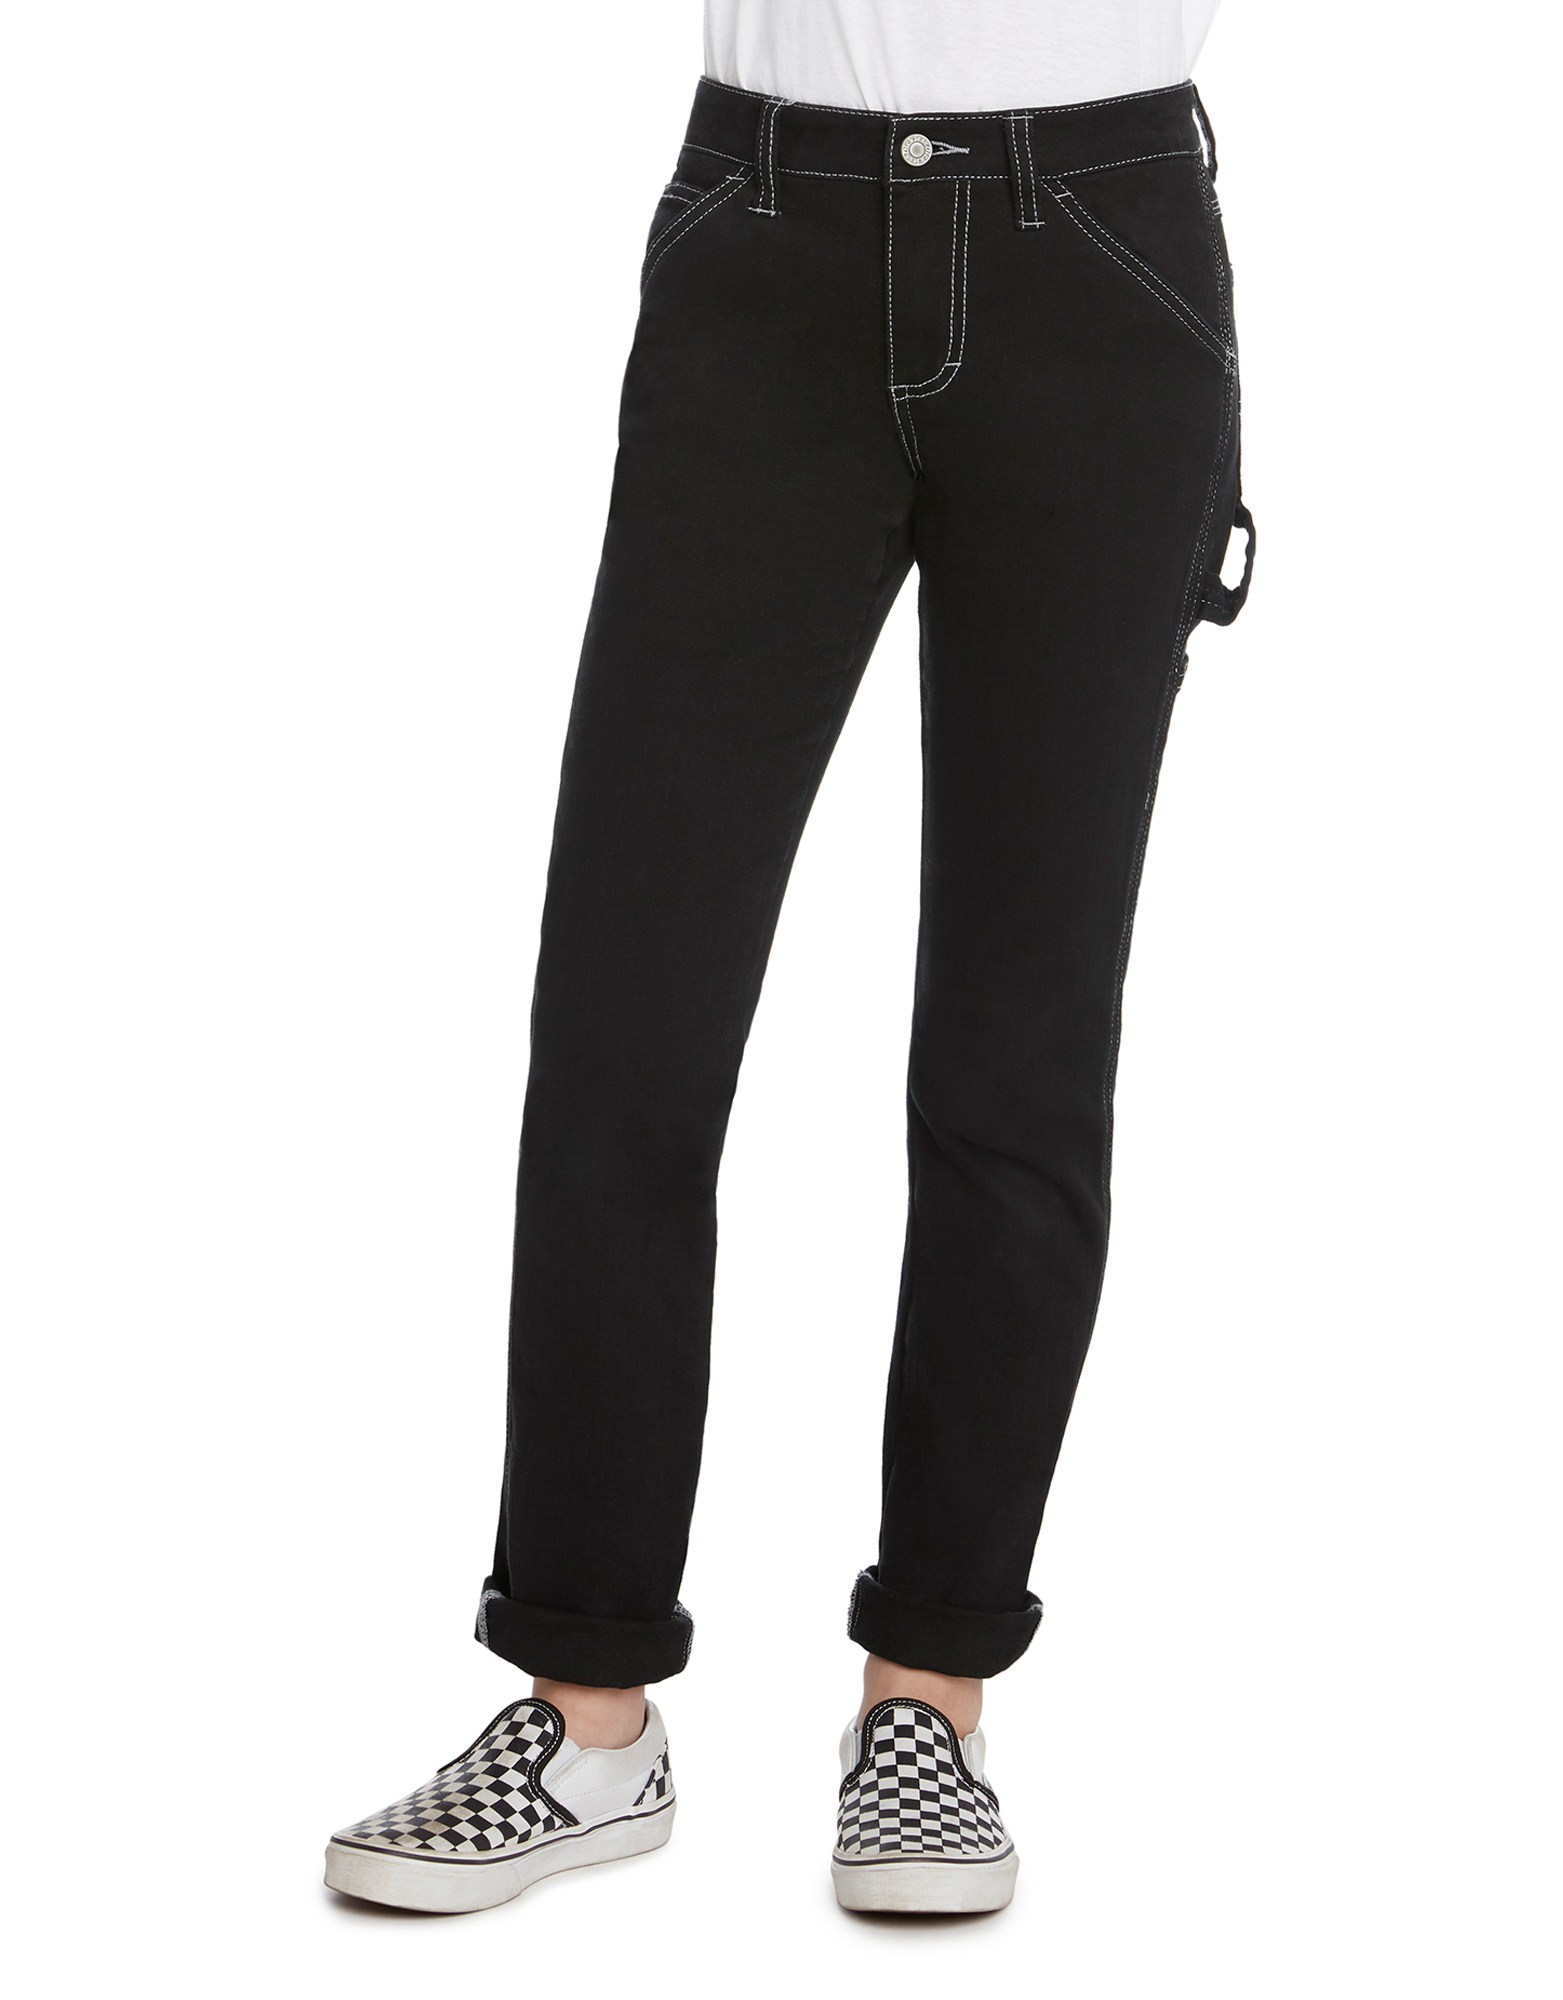 Girls' FLEX Skinny Fit Carpenter Pants - Black (BK)